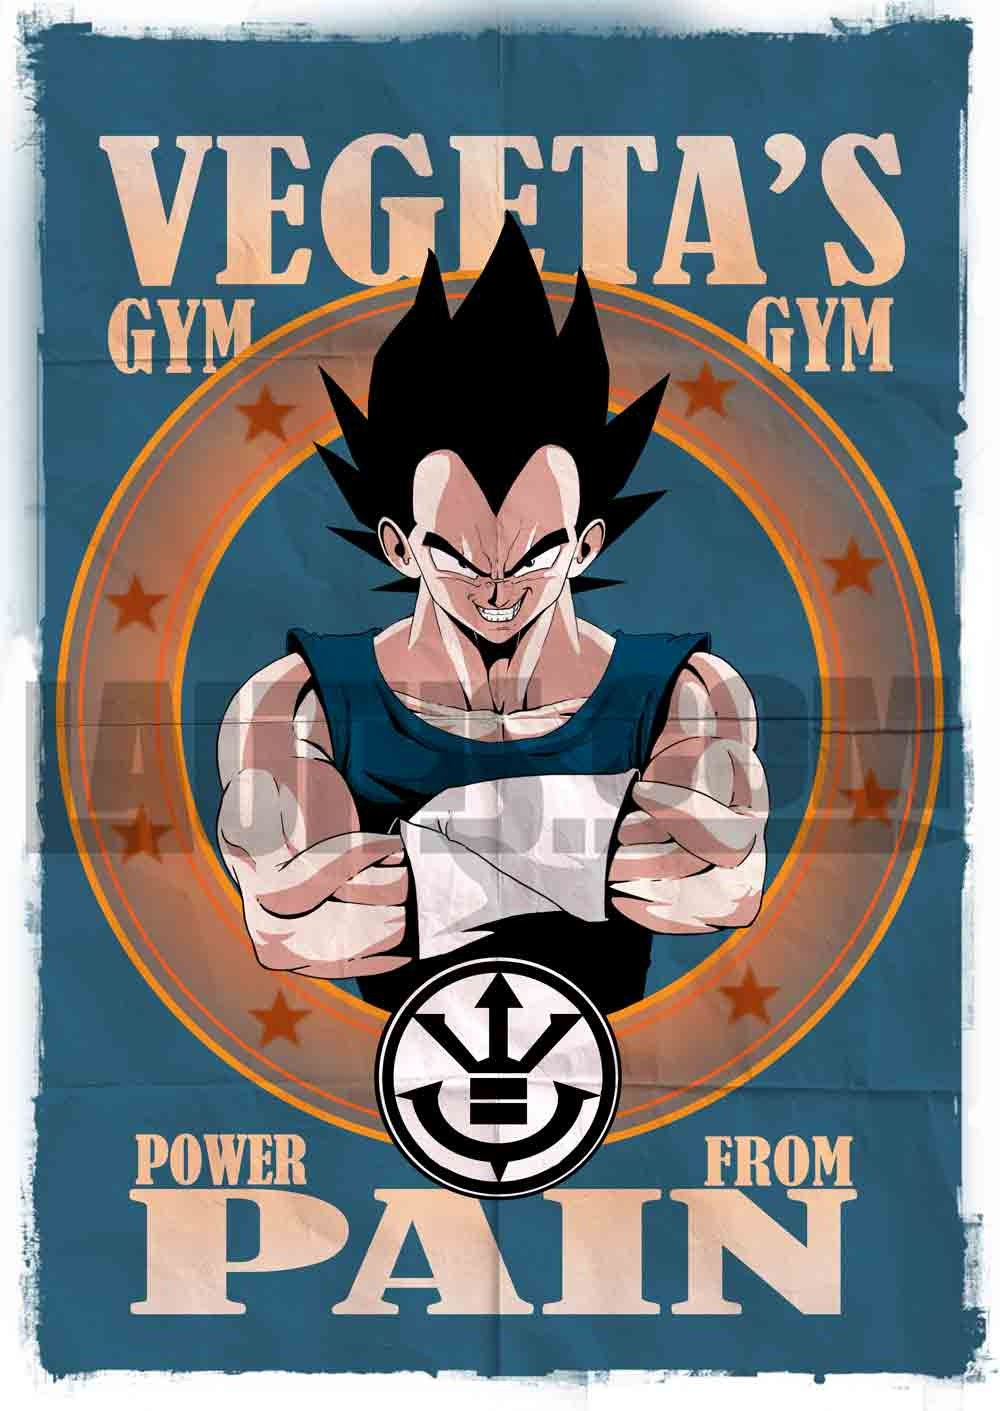 Dragon ball z vegeta 39 s gym poster by mark lauthier by for Gimnasio 5 dragones